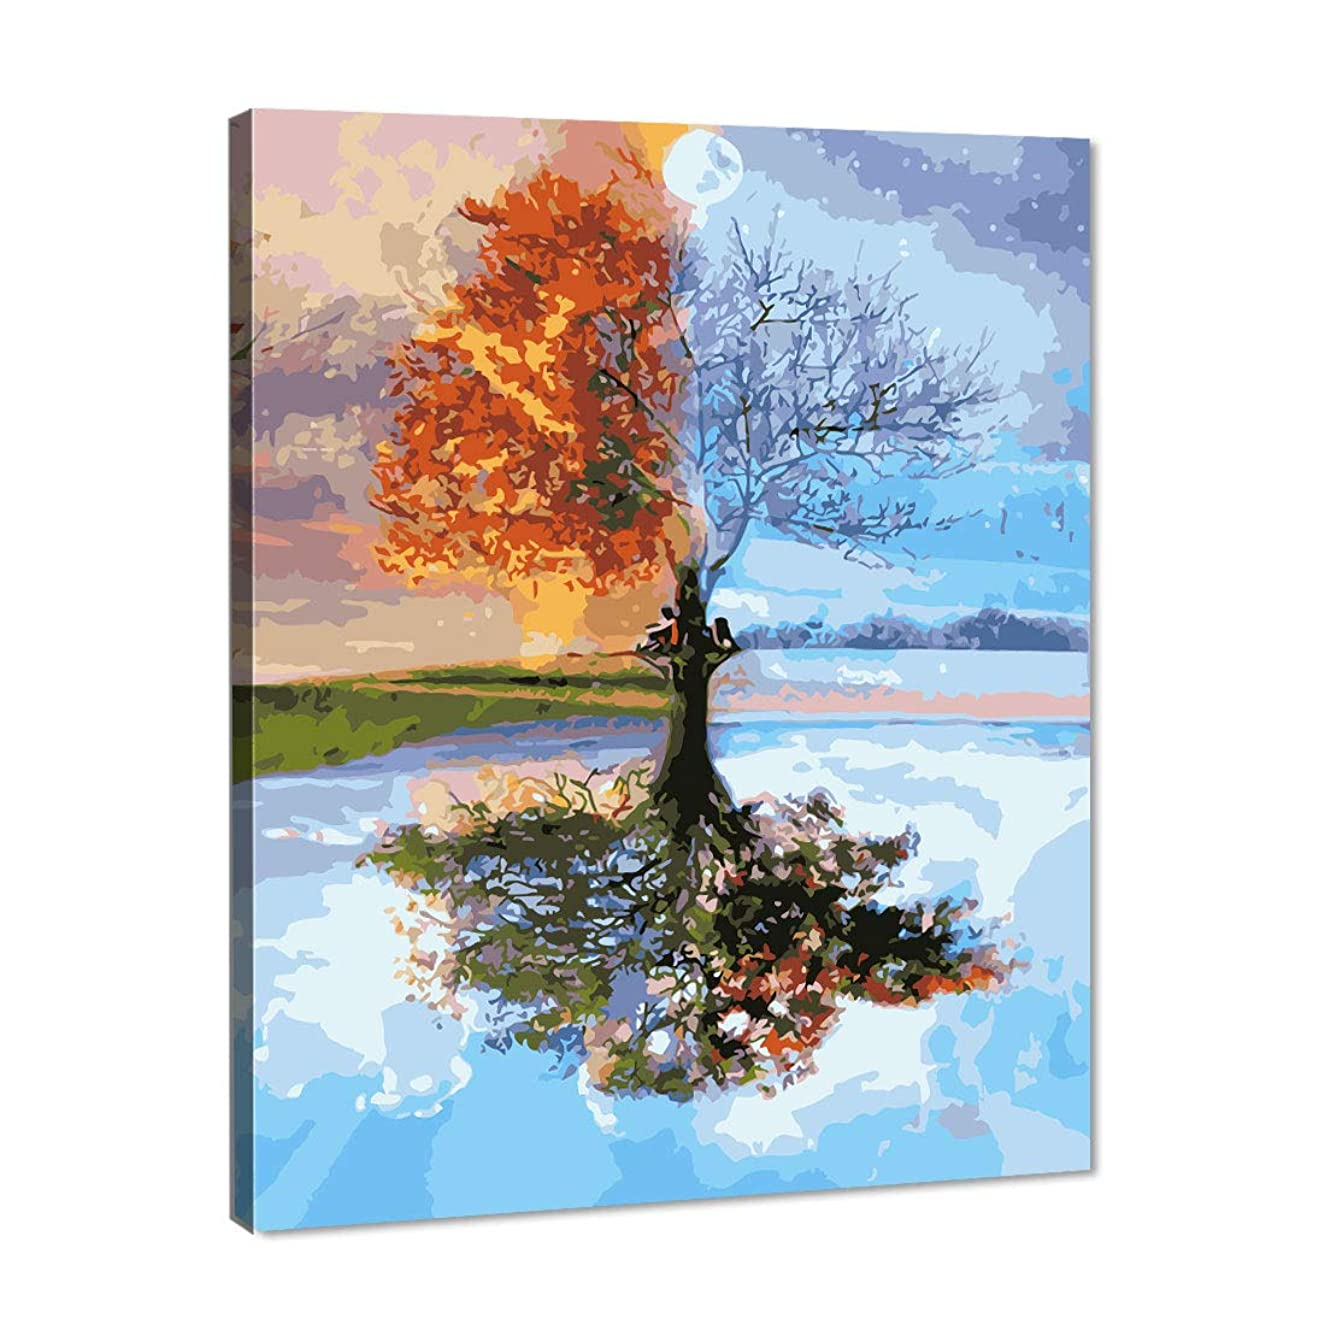 Horseben Art Paint by Number Kits for Adults and Kids DIY Oil Painting on Canvas - Four Seasons Tree Landscape (16x20 Inch,Frameless)